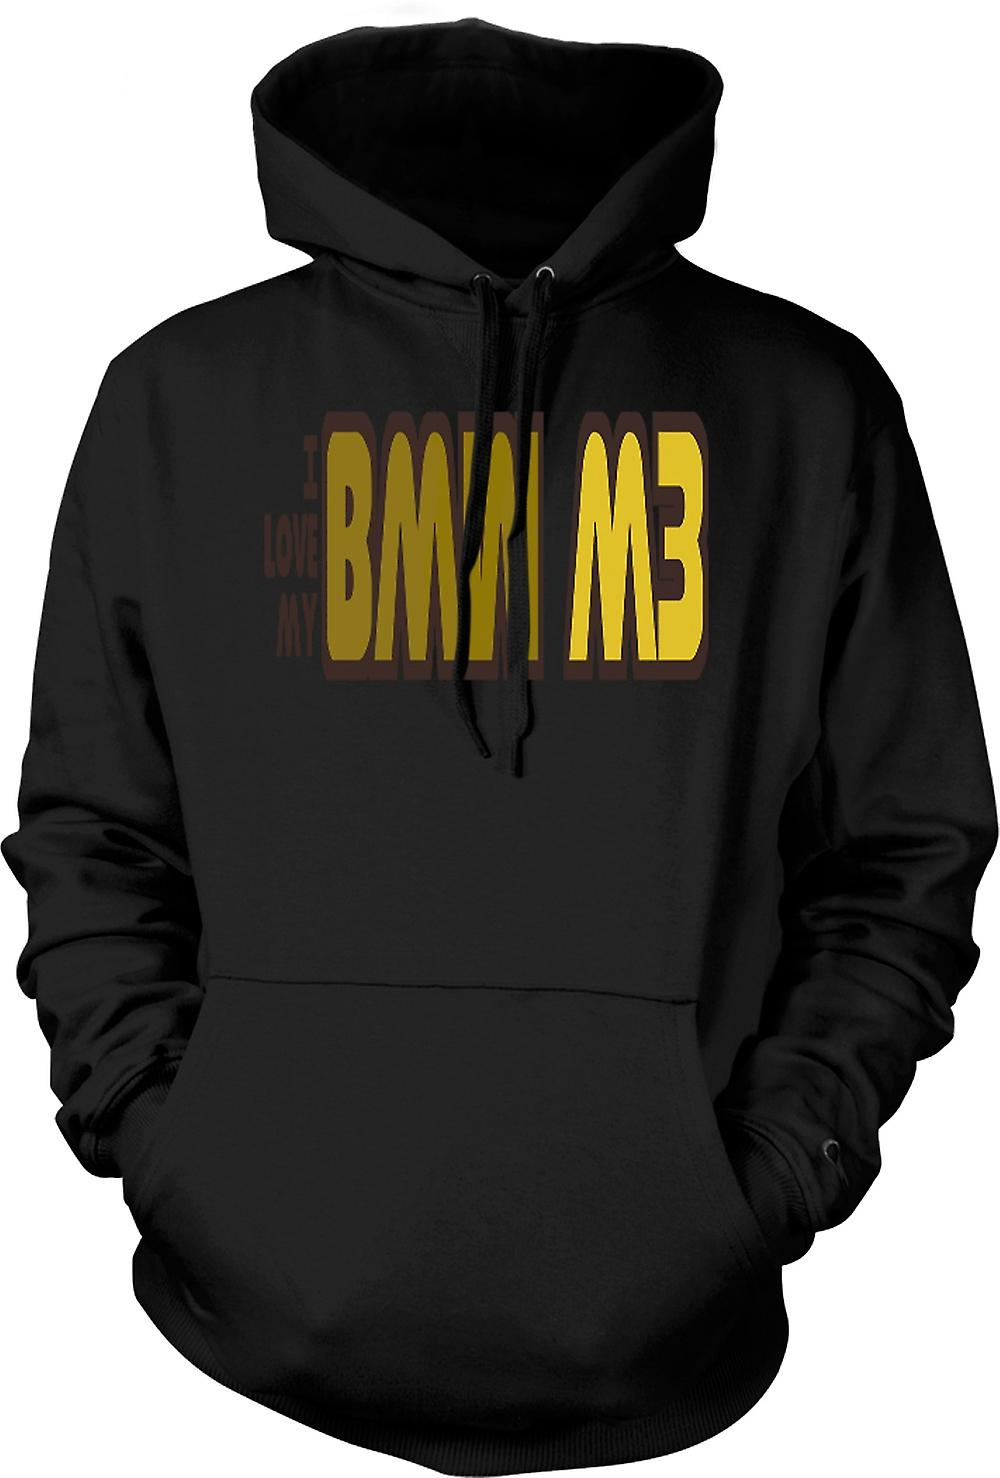 Mens Hoodie - I Love My BMW M3 - Car Enthusiast